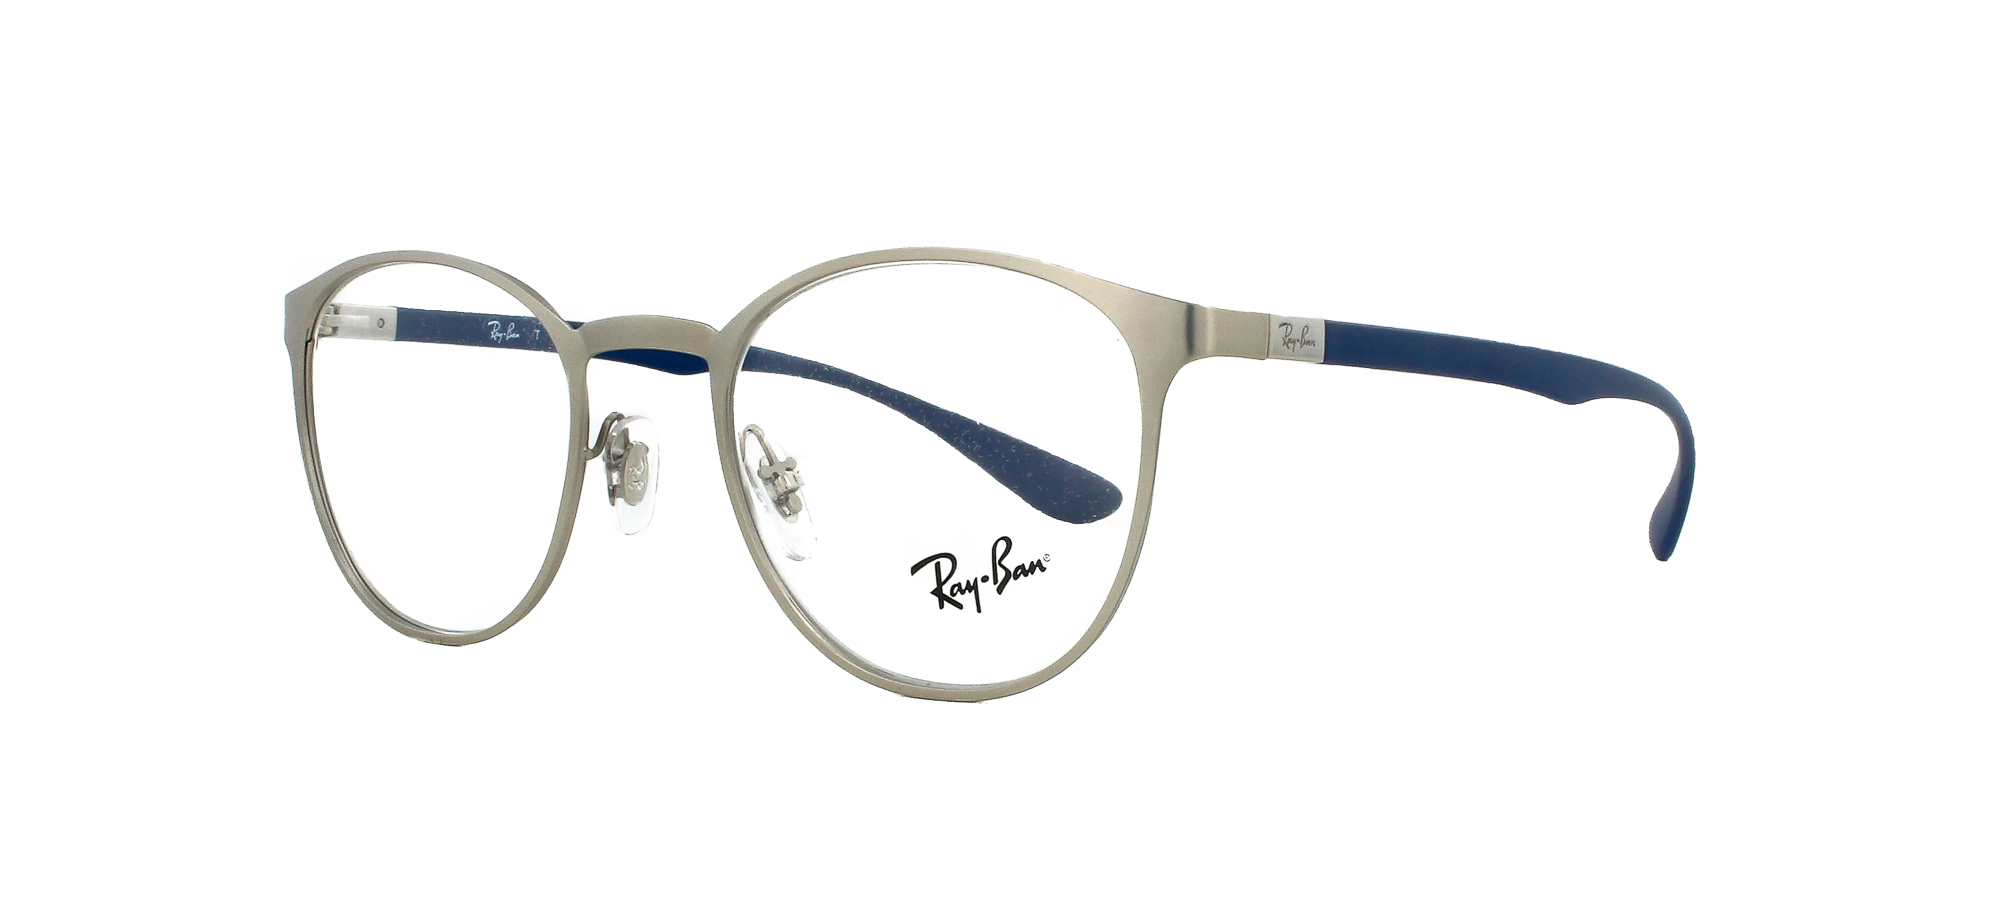 149a165ce2 Ray Ban RB 6355 2538 Frames Eyeglasses Round 47mm - 170